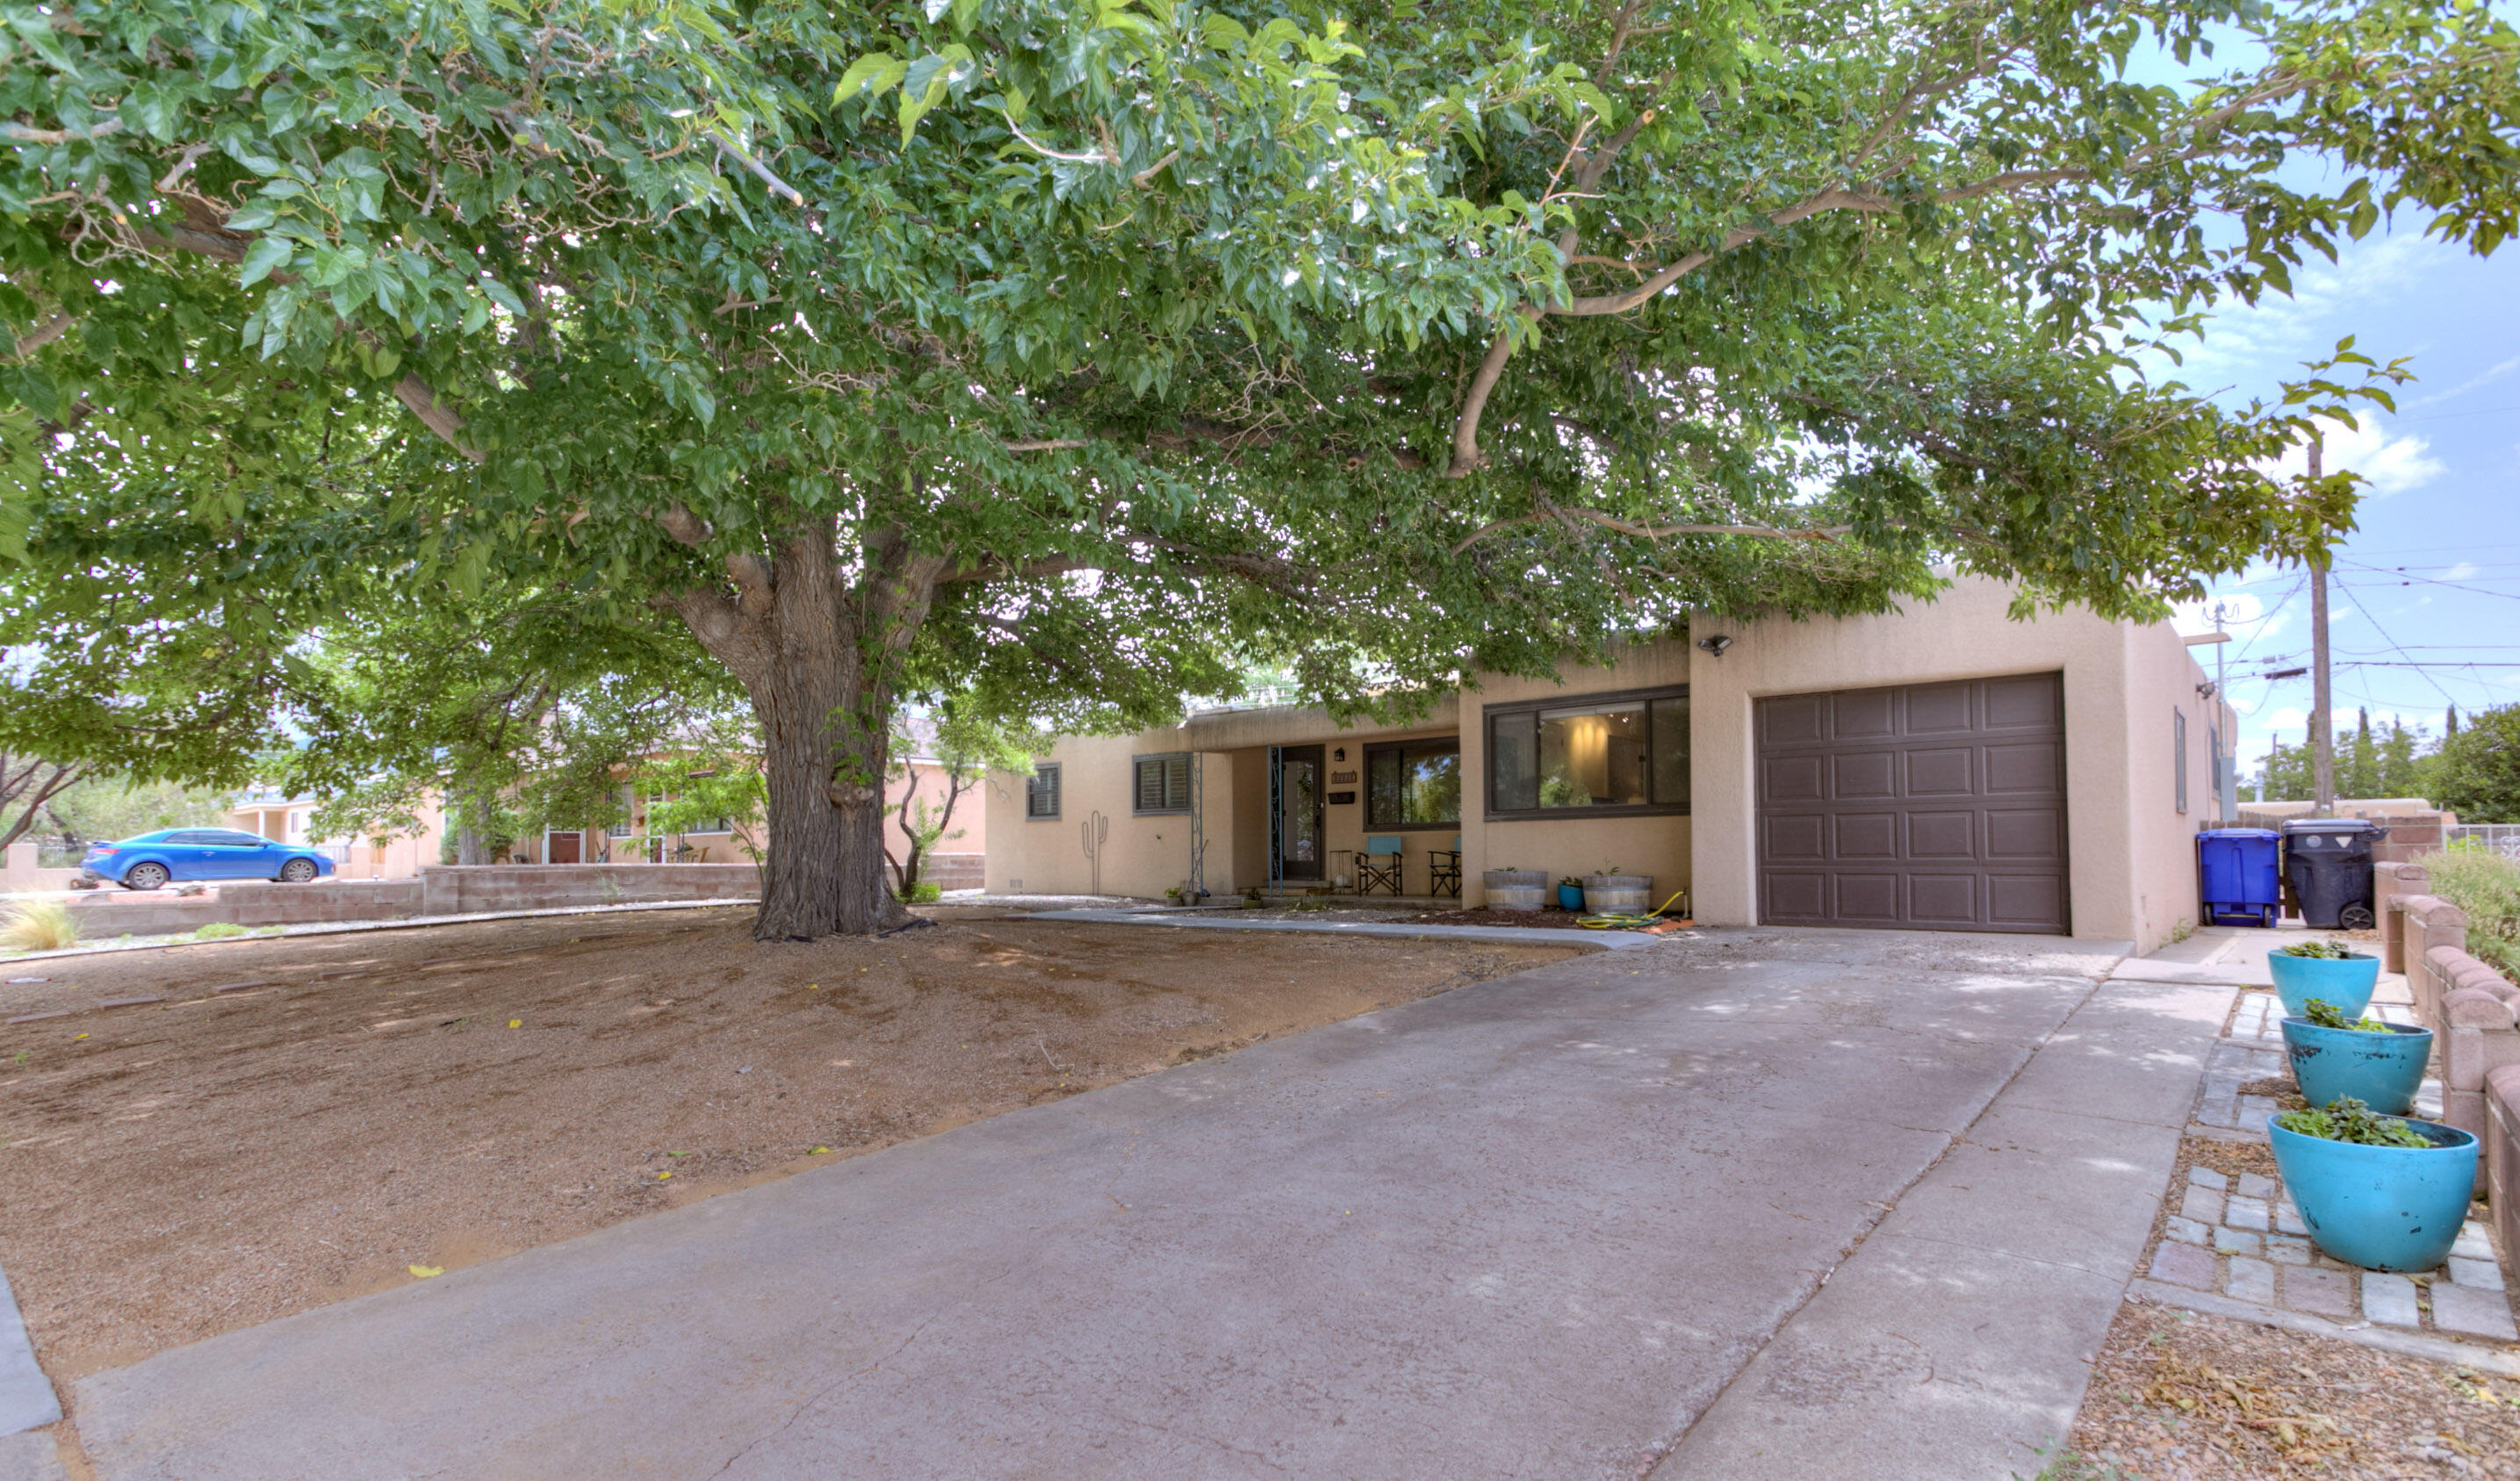 Welcome Home this great floor plan, includes 4 bedrooms, 2 living areas, plus a formal dining room! with Hardwood Floors, refrigerated air, thermal windows! All appliances including refrigerator, washer/dryer stay! new APP Modified Bitumen roof in '18! Family Room could be used as an office with it's own private entrance. Come make this home yours today.